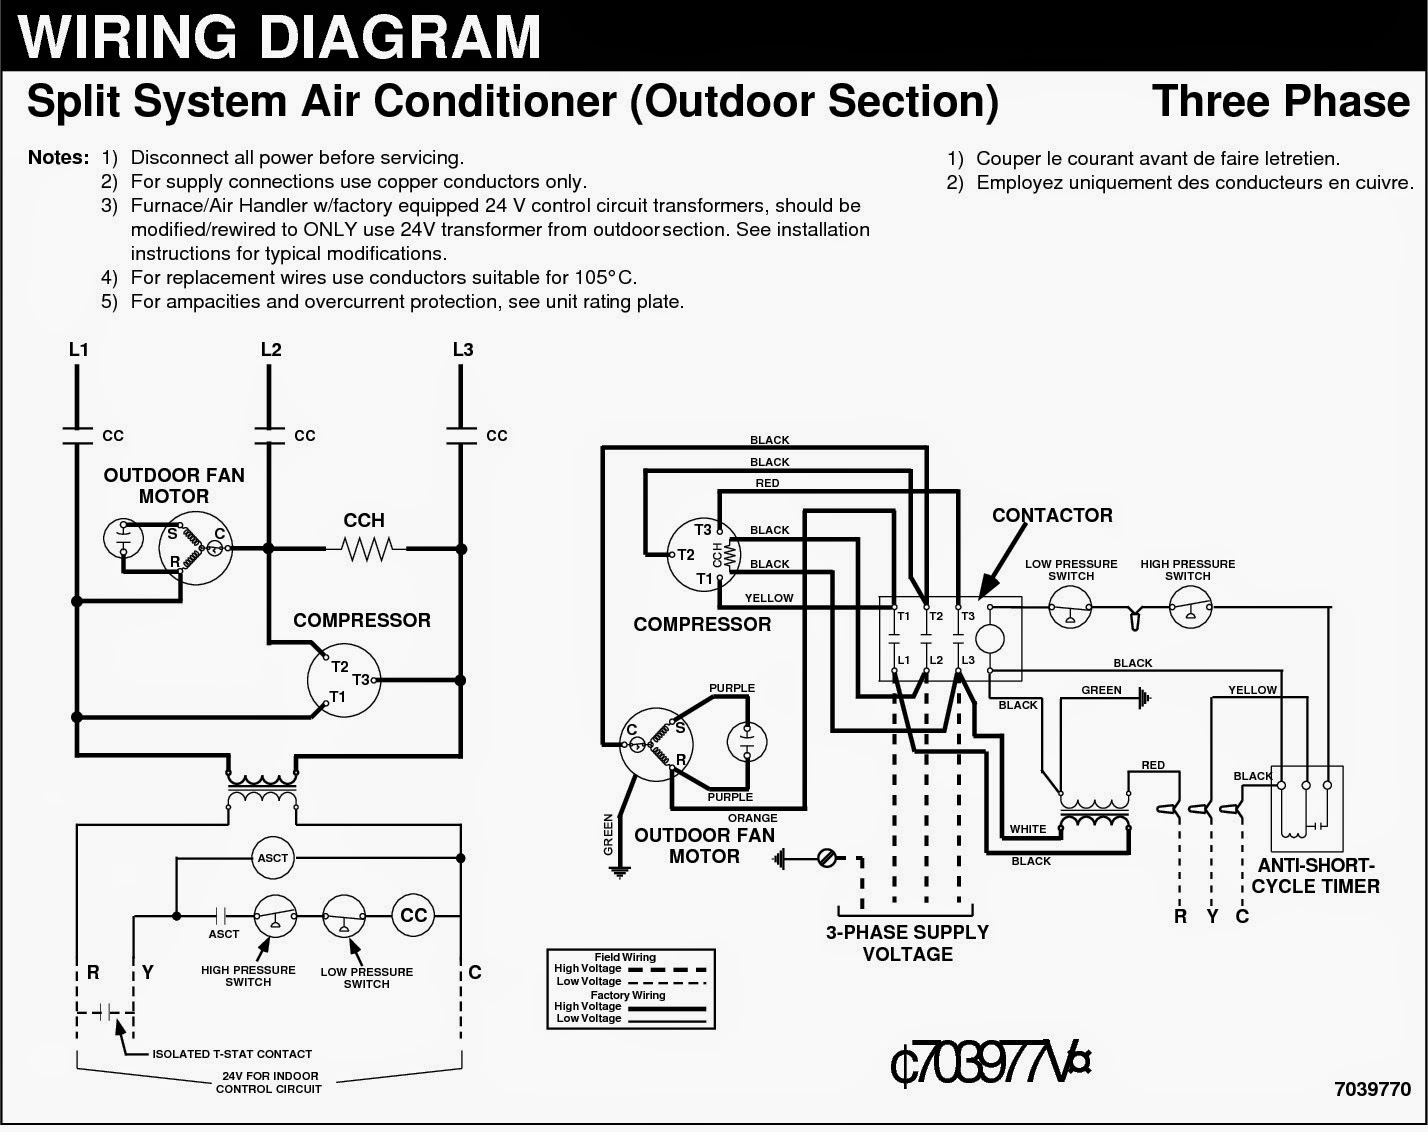 3+phase electrical wiring diagrams for air conditioning systems part two three phase electrical wiring diagram at readyjetset.co